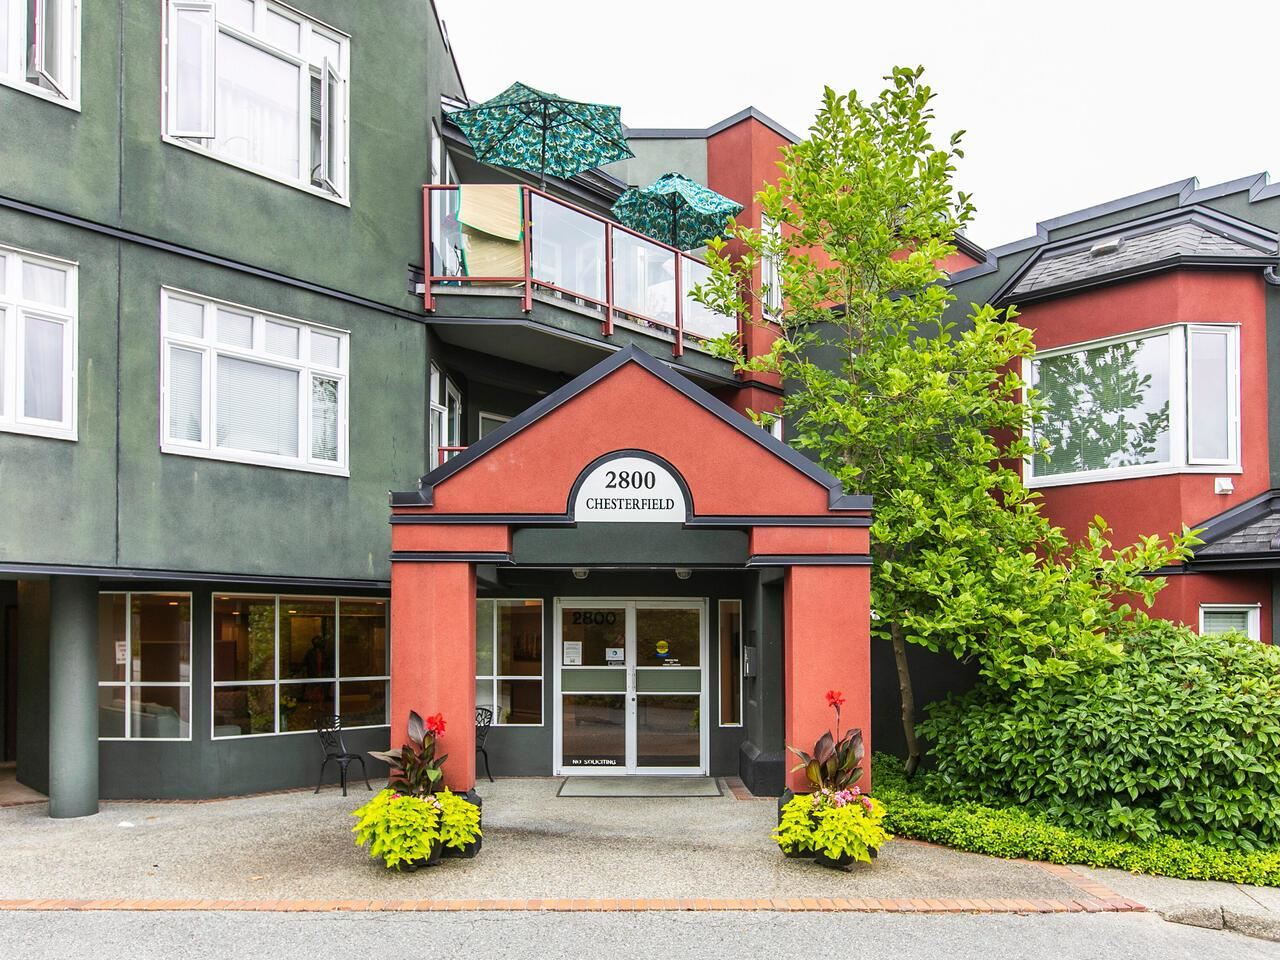 104 2800 CHESTERFIELD AVENUE - Upper Lonsdale Apartment/Condo for sale, 2 Bedrooms (R2603260) - #30